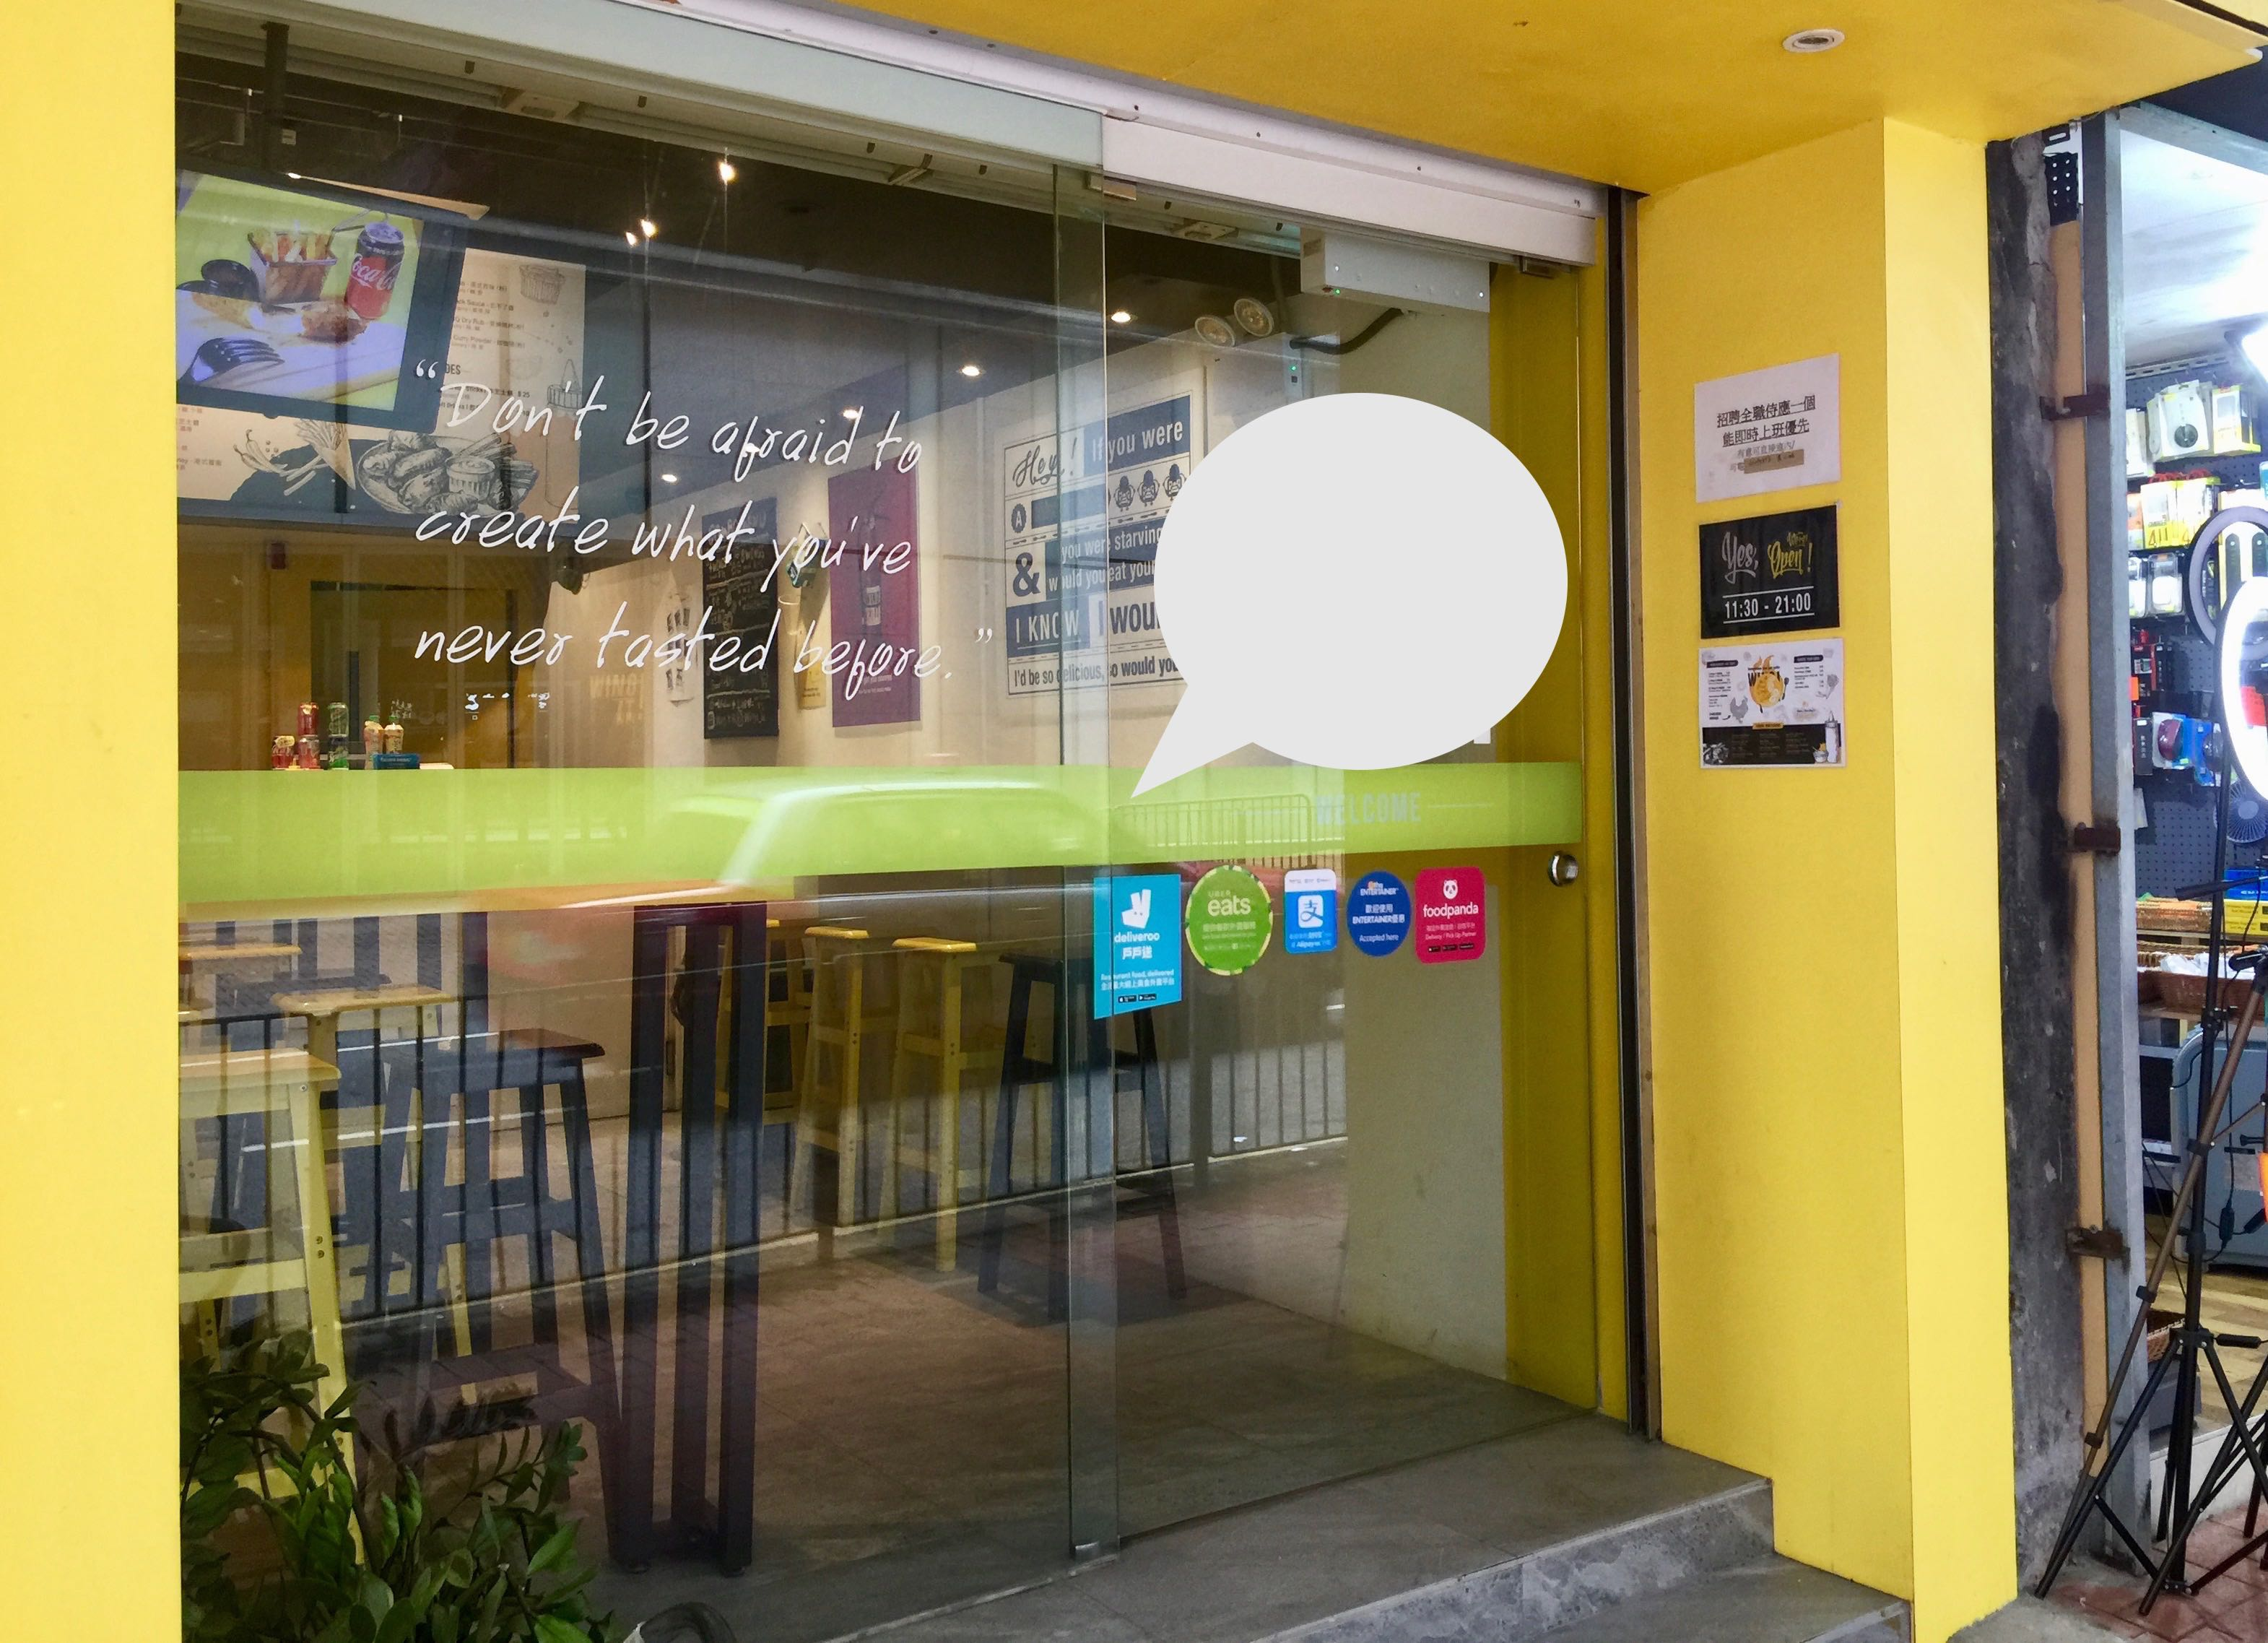 Causeway Bay grab-and-go shop for Rent HK